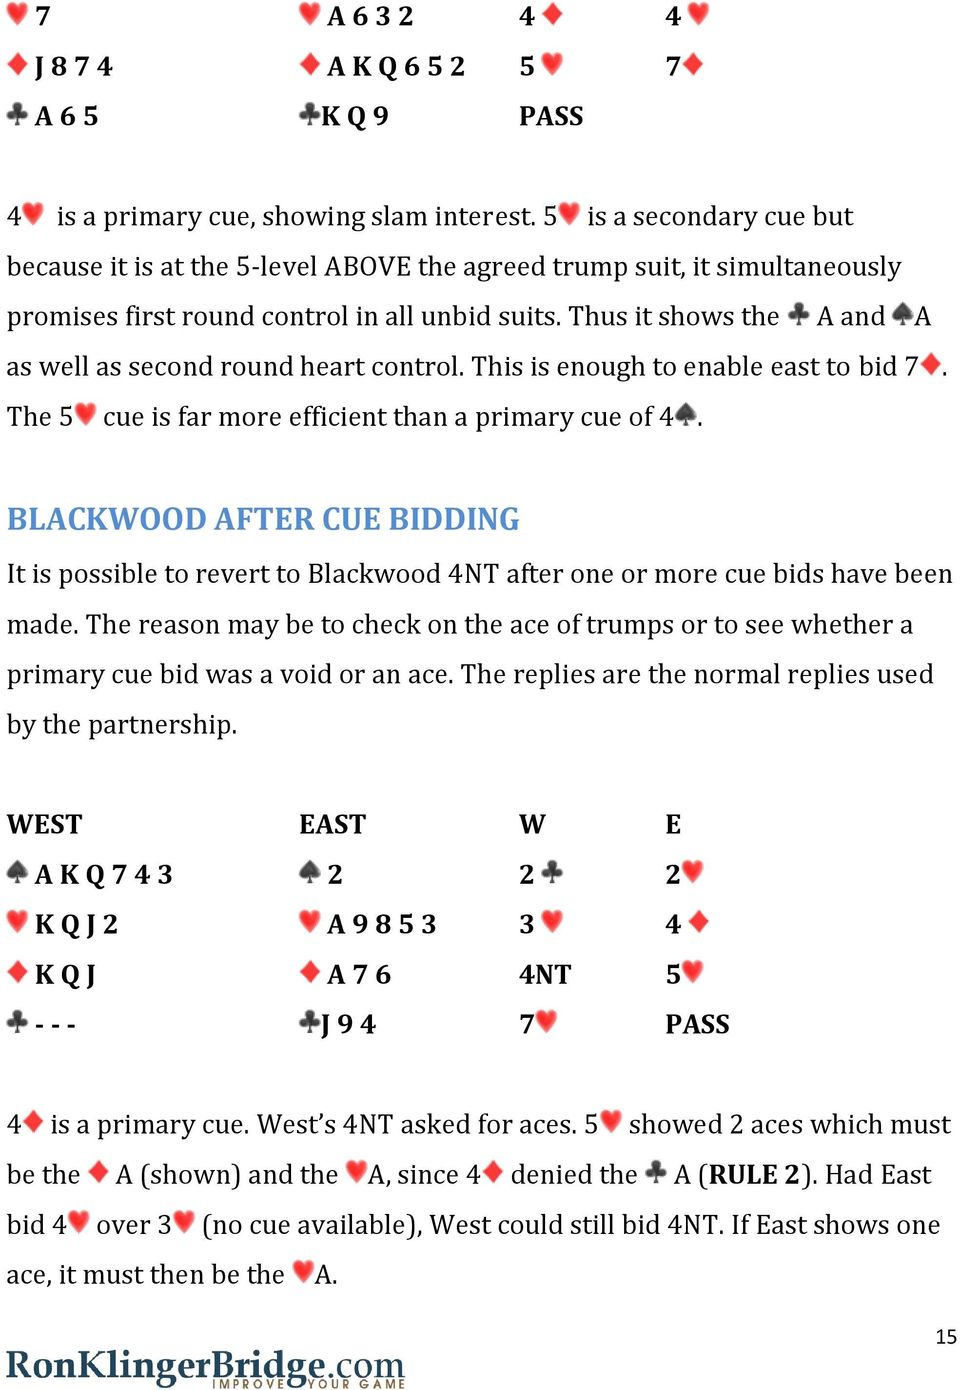 Thus it shows the A and A as well as second round heart control. This is enough to enable east to bid 7. The 5 cue is far more efficient than a primary cue of 4.